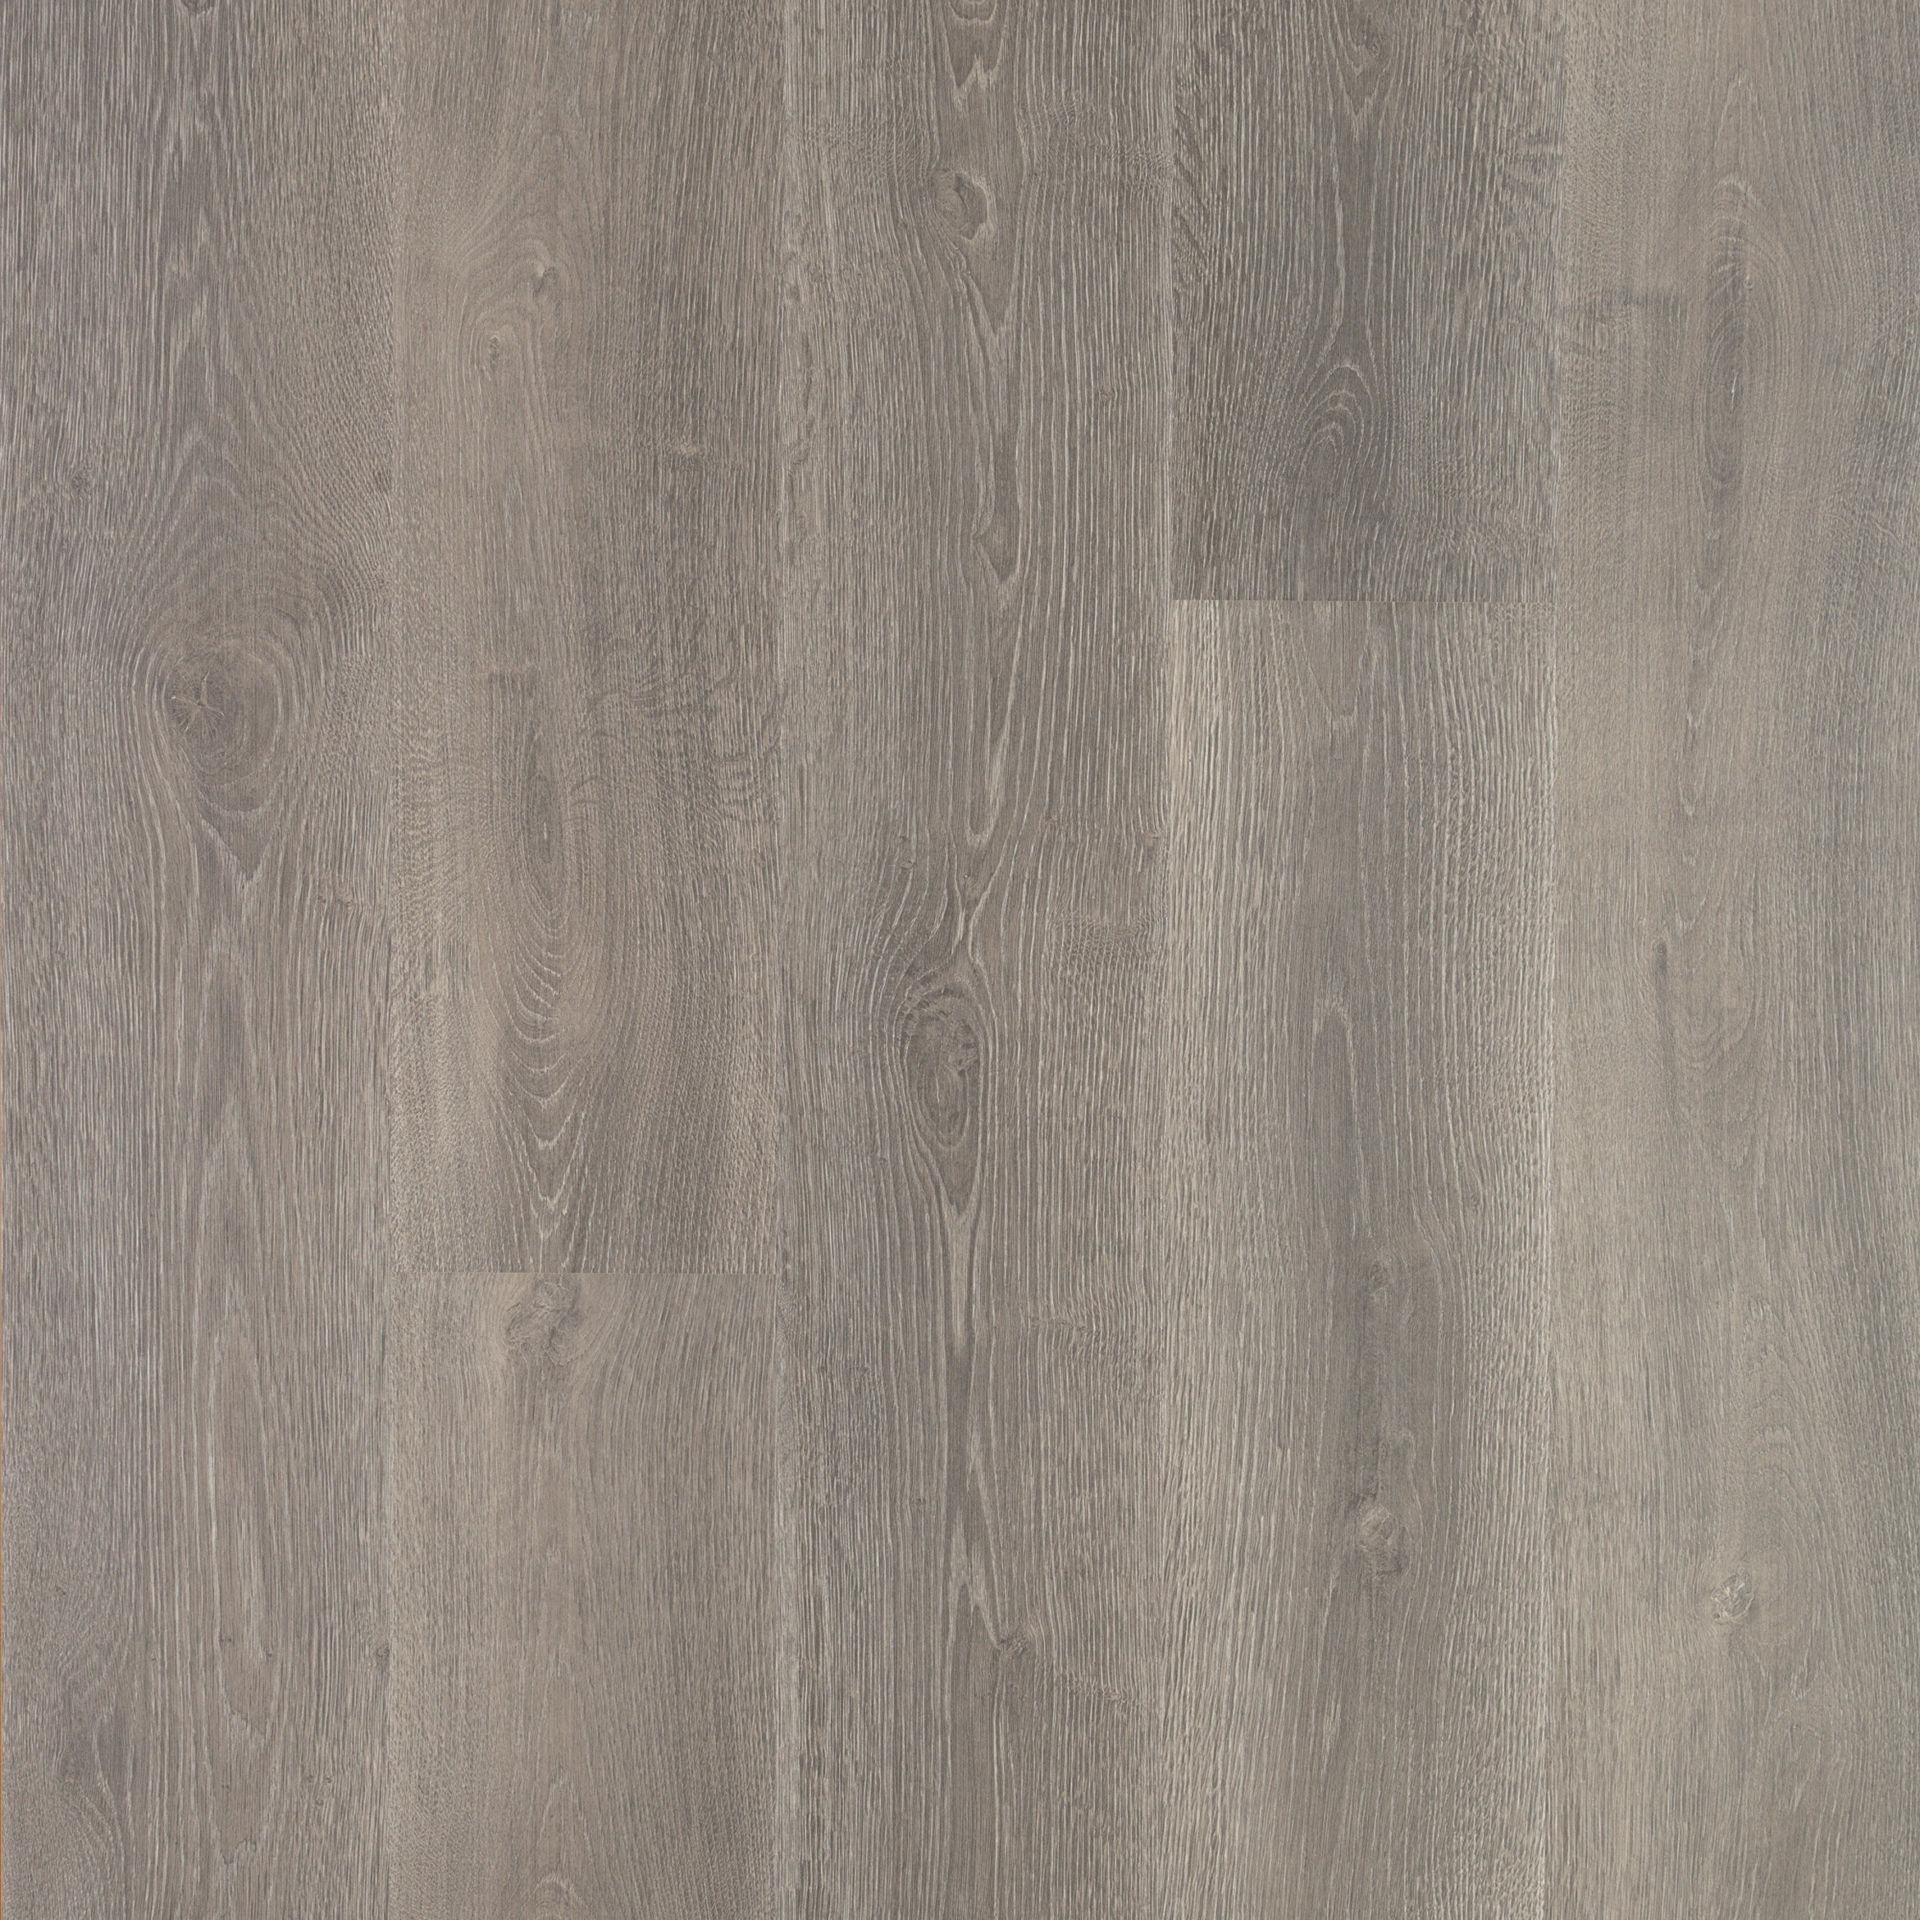 Quickstep Bolingbrook Oak Buy Laminate Flooring Online